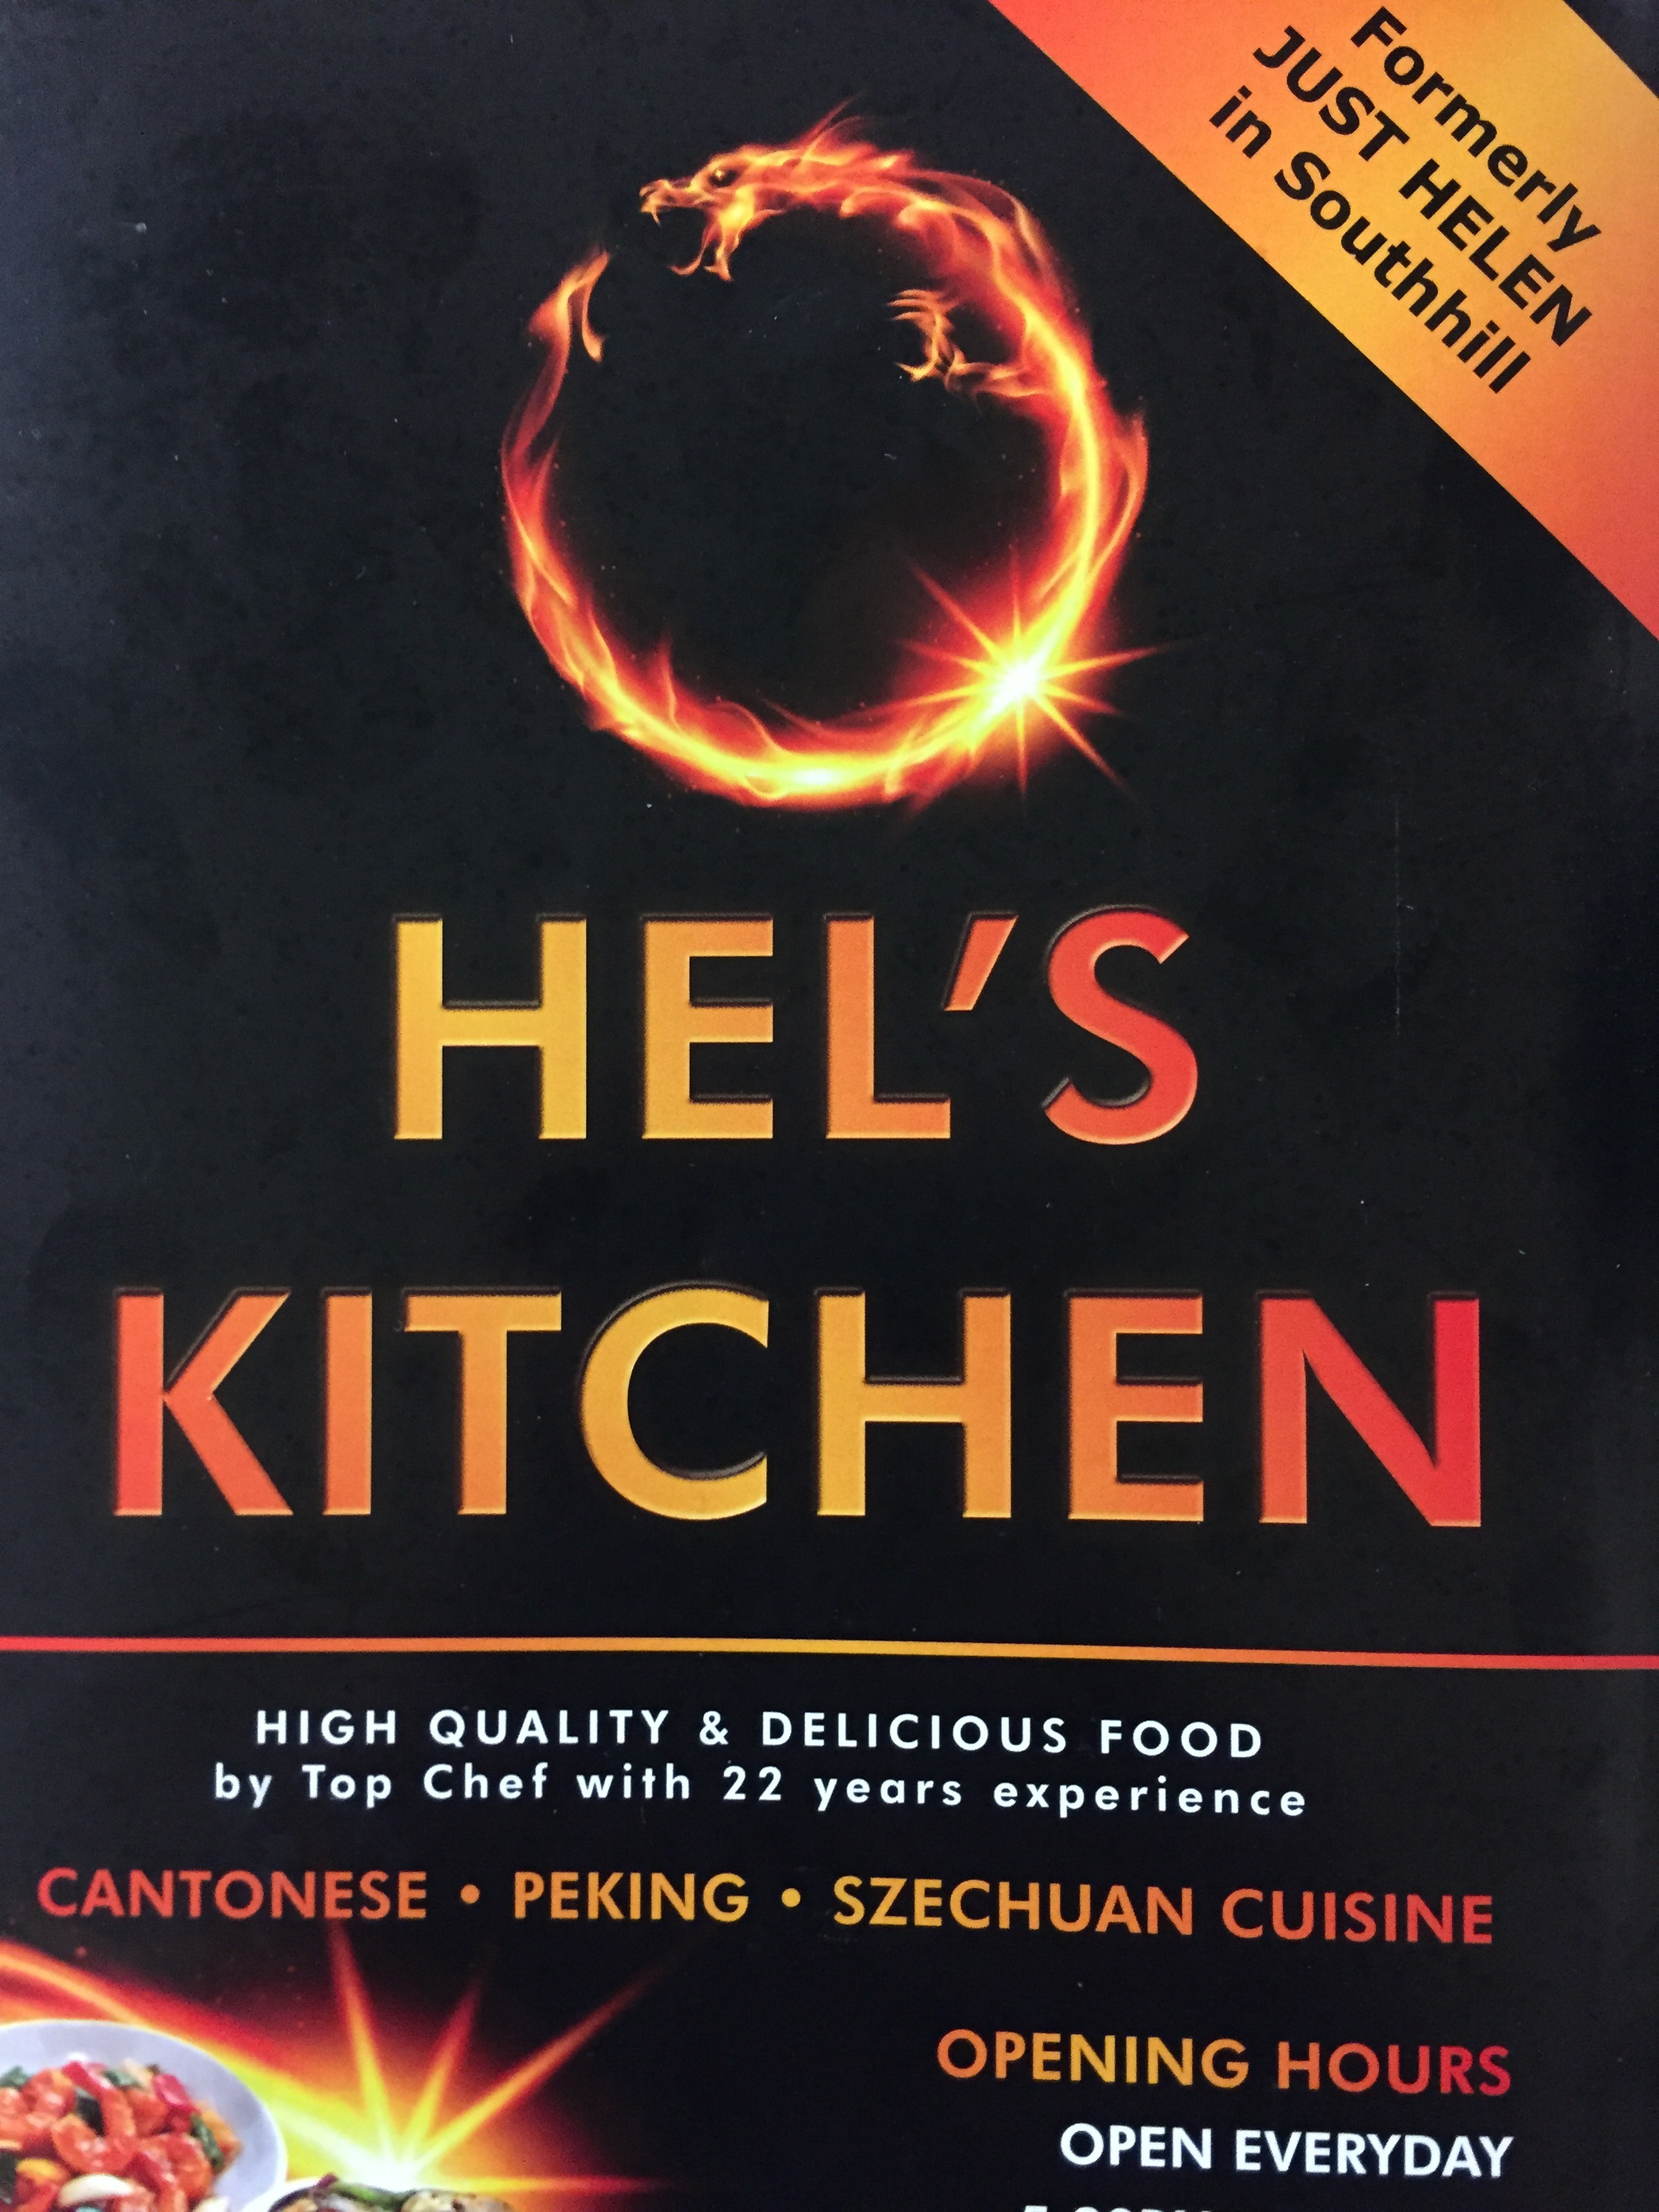 Hel's Kitchen